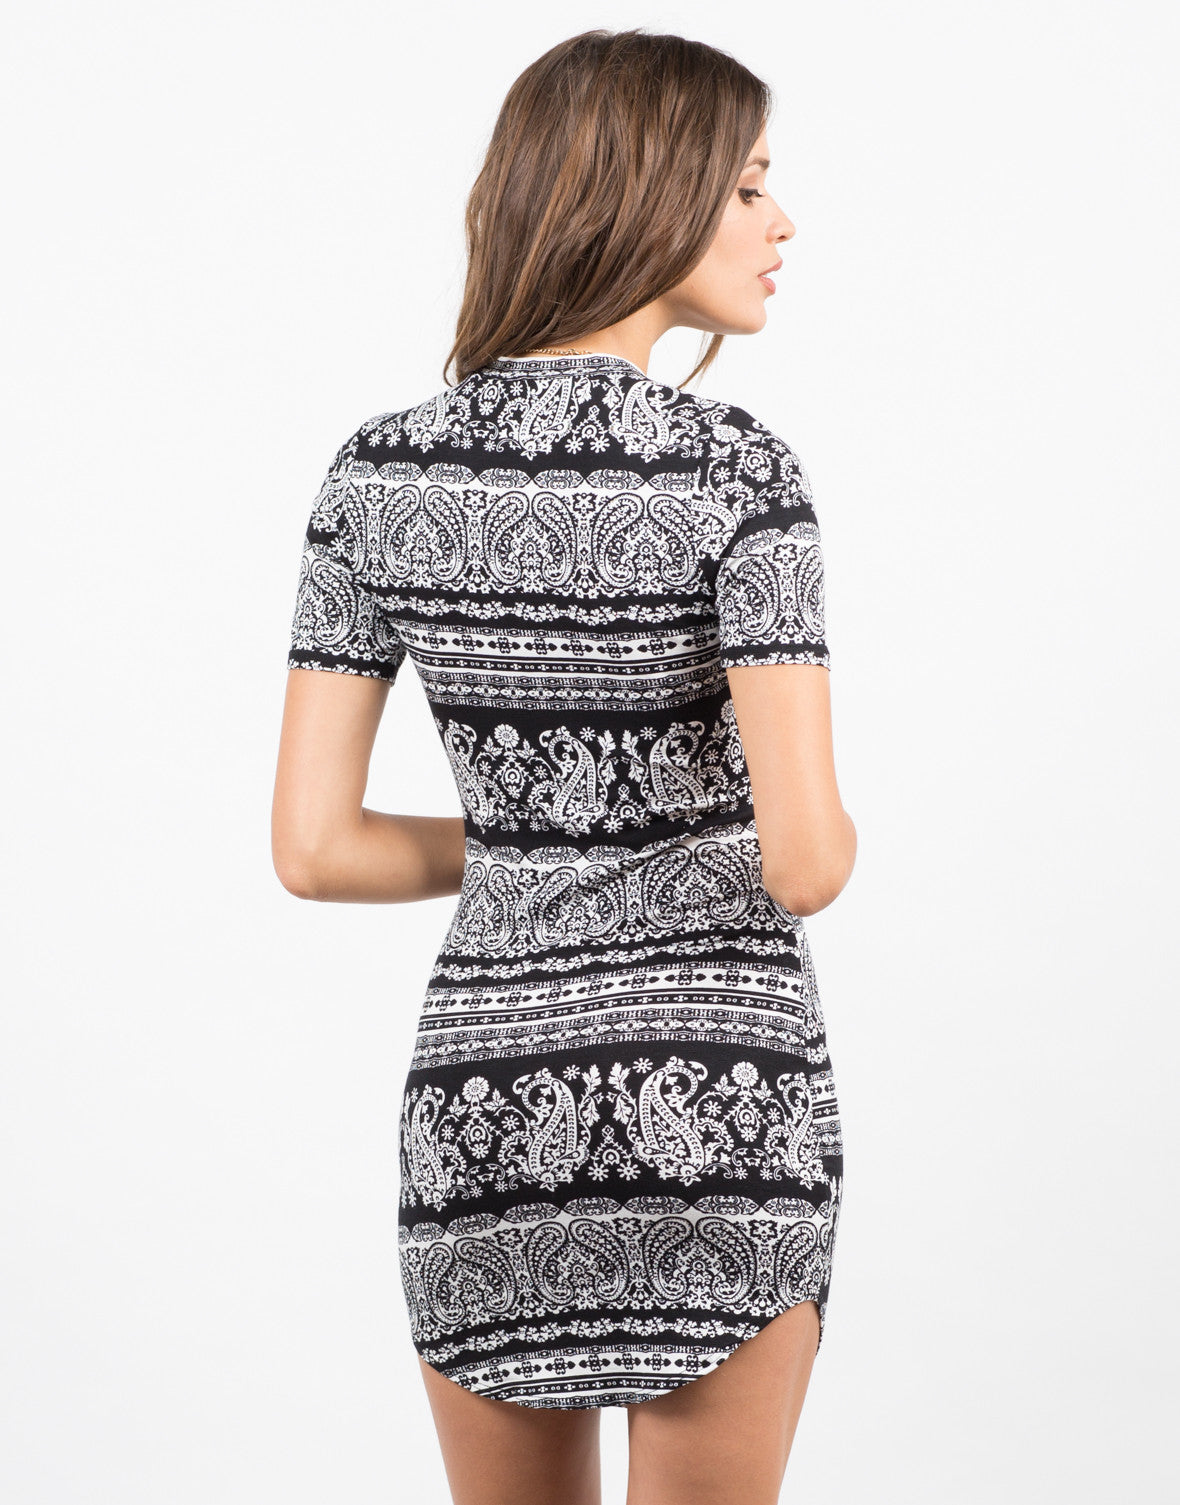 Back View of Paisley Printed Dress